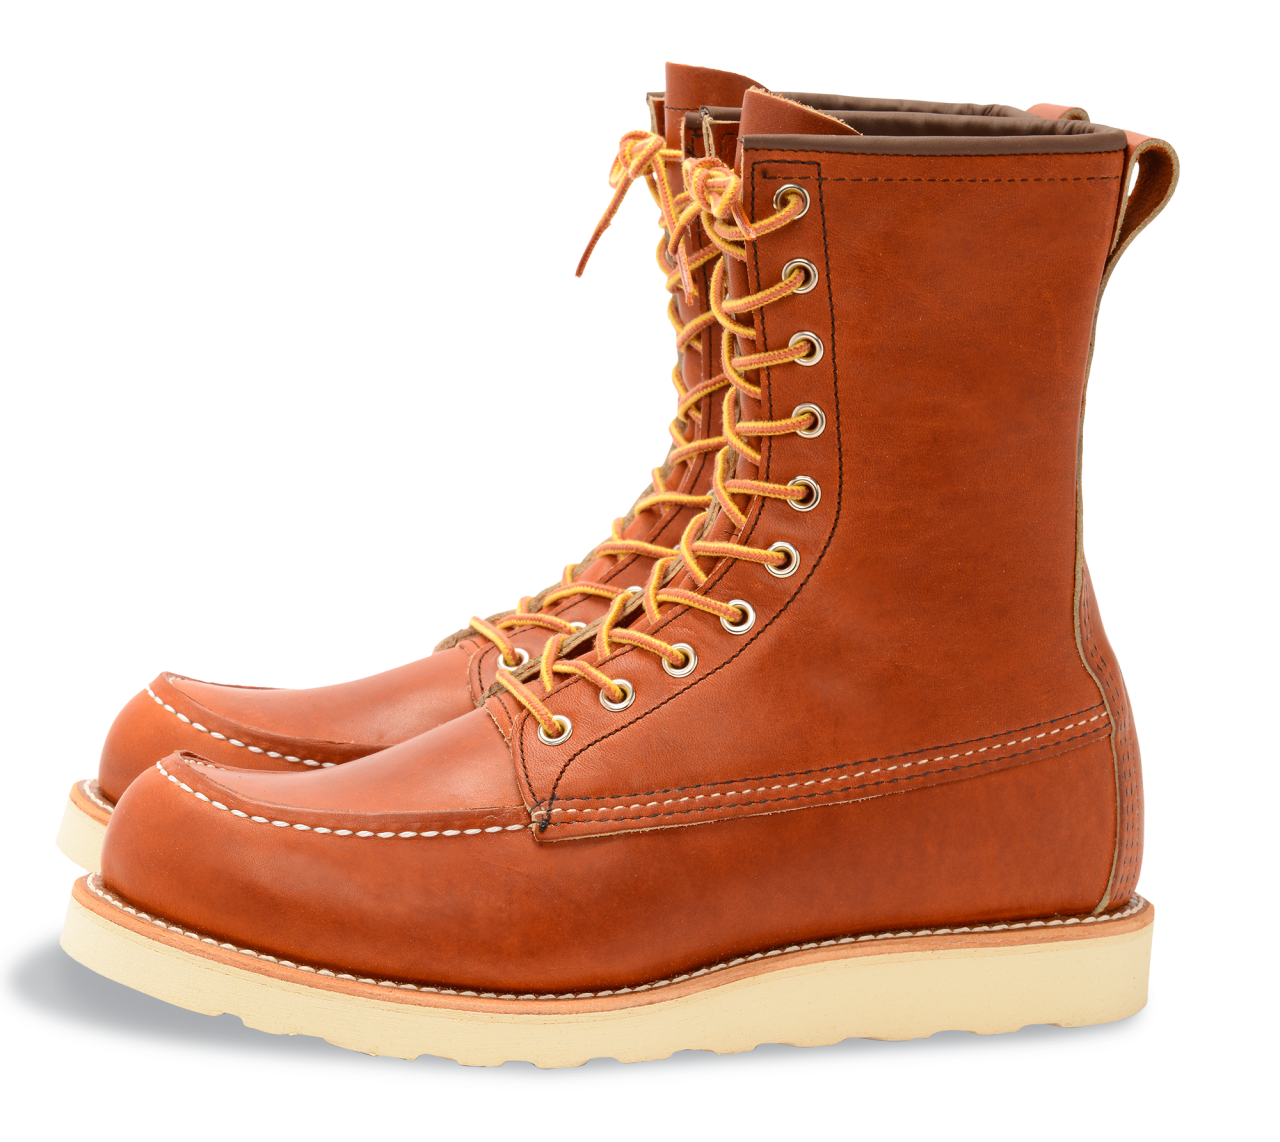 Red Wing 877 Moc Toe